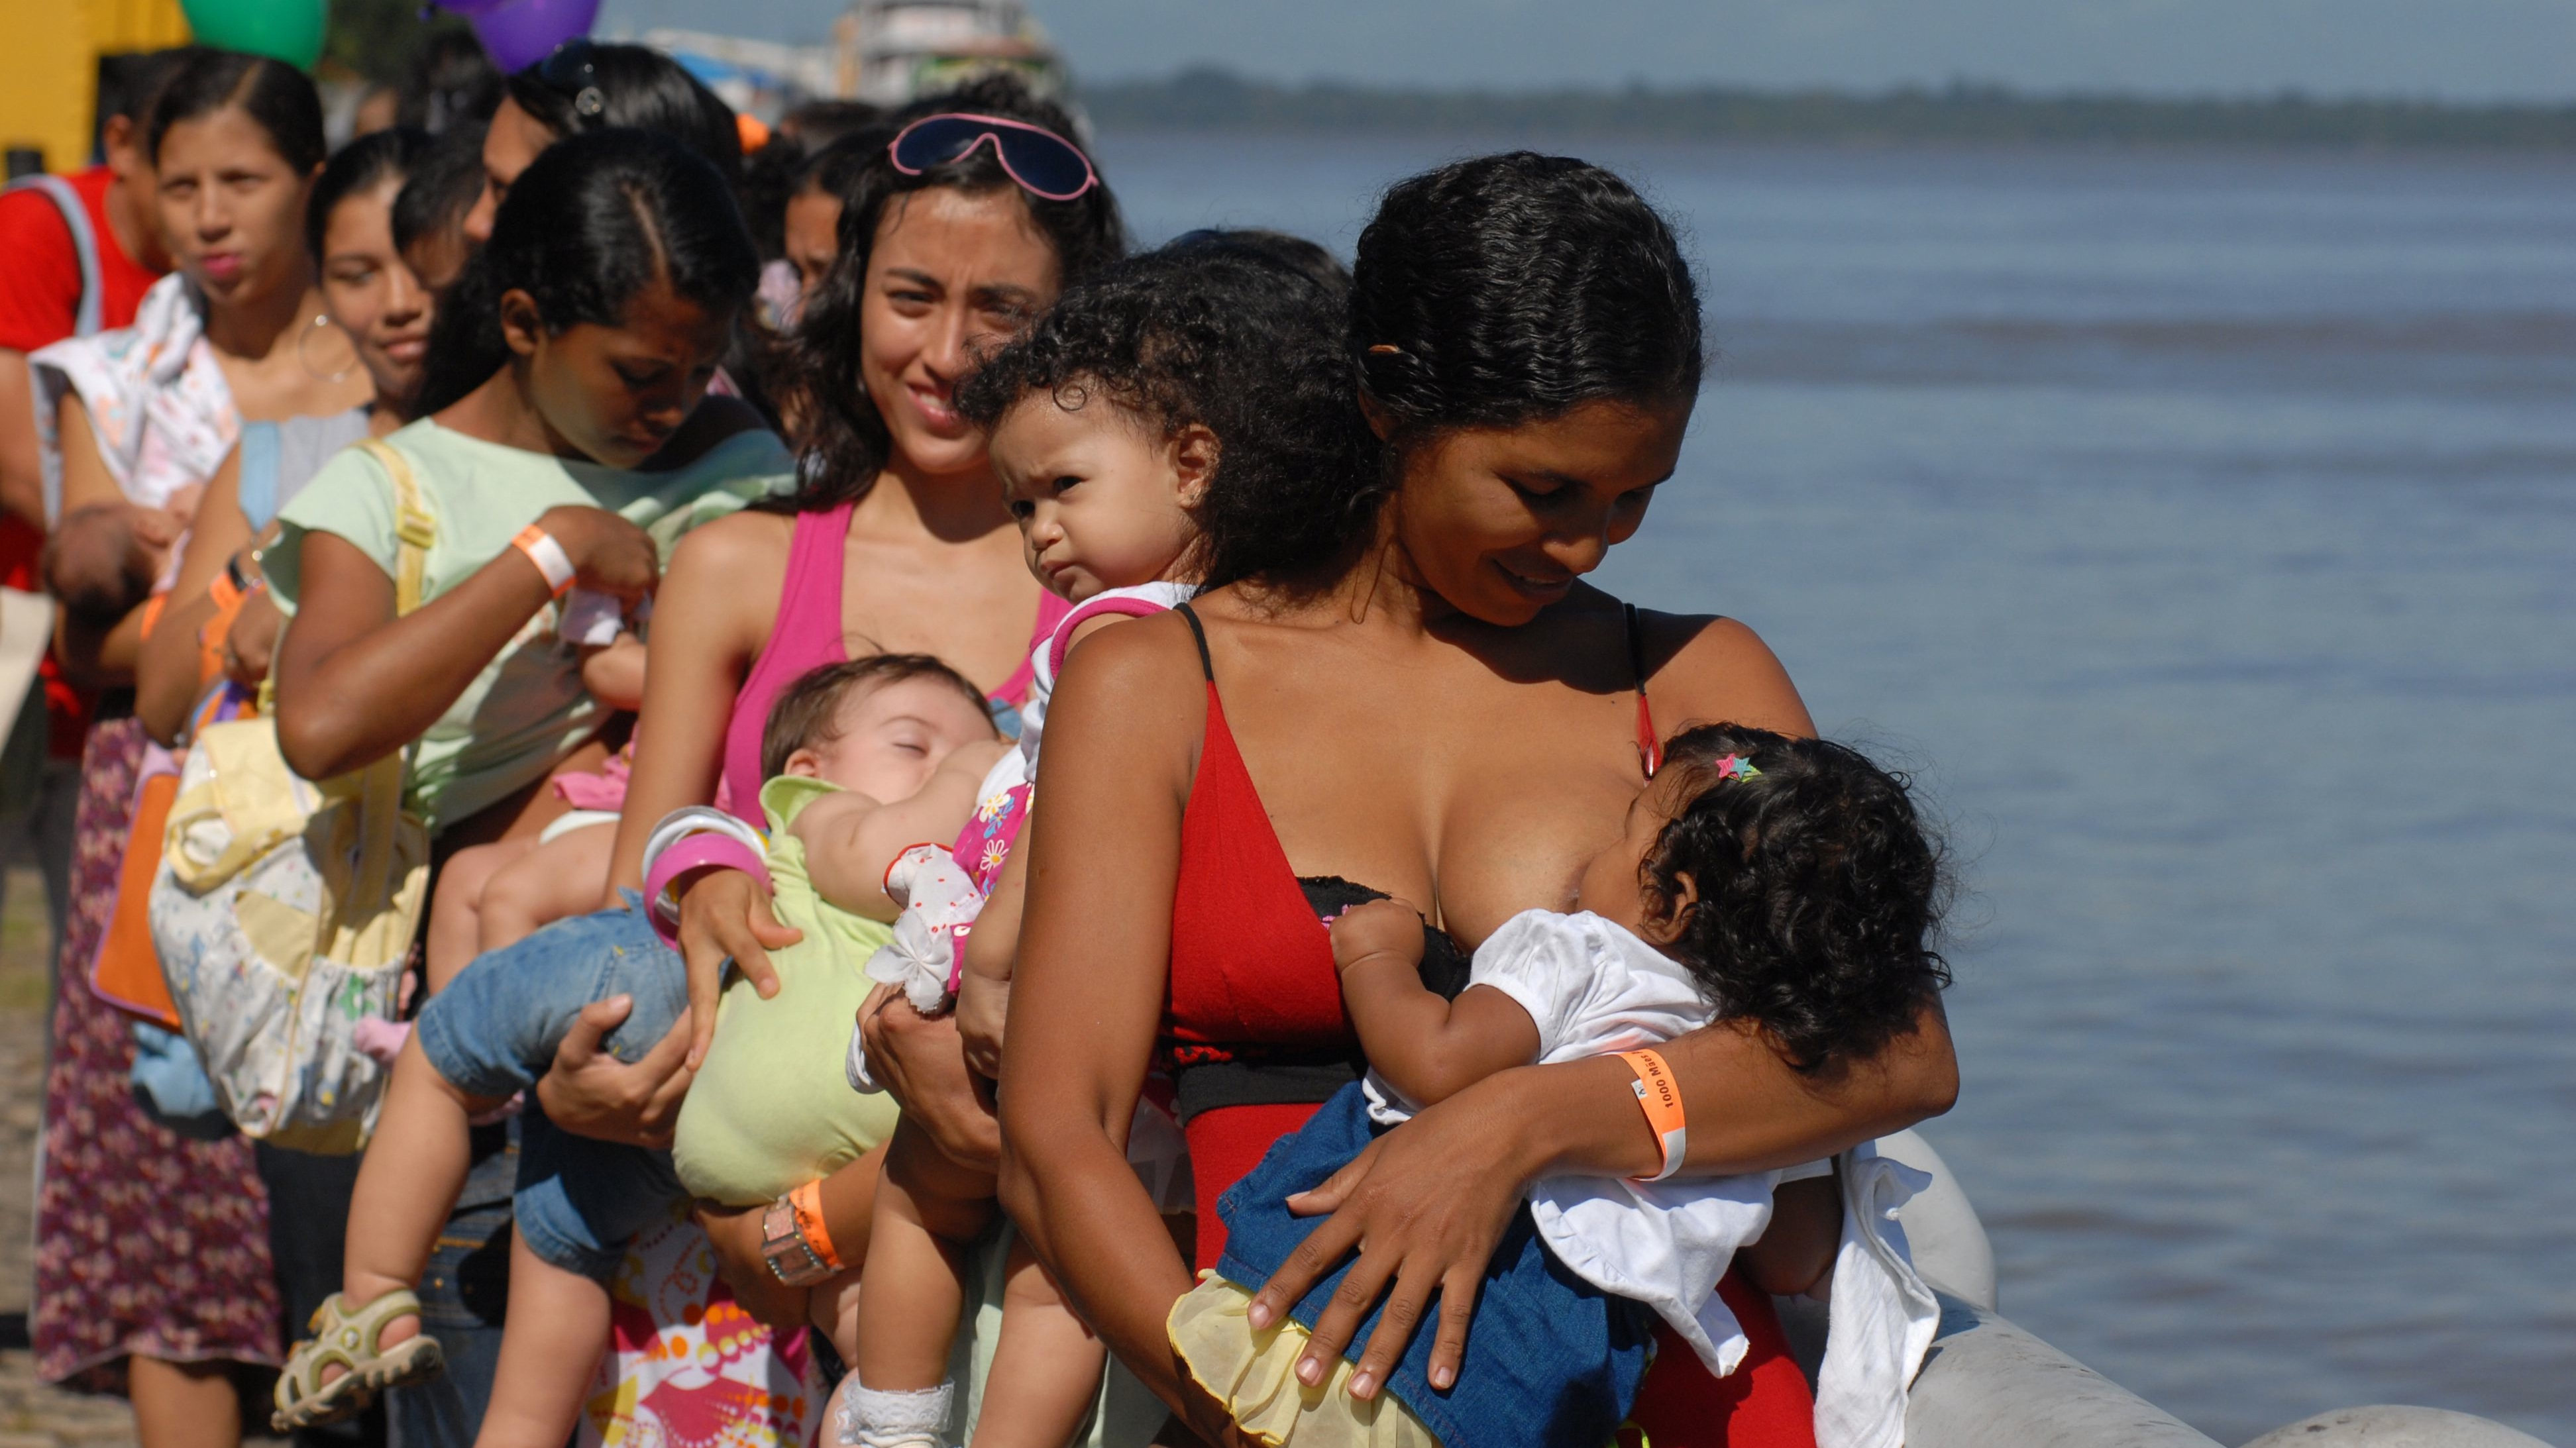 Brazilian mothers breast-feed their babies during an event organized to coincide with the opening of the Tenth National Conference on Breastfeeding, along the shore of Guajara Bay, a branch of the Amazon River, in Belem May 20, 2008. Organizers called on some 1,000 mothers to breast-feed simultaneously and emphasized the importance of providing mother's milk for babies. REUTERS/Paulo Santos (BRAZIL)   BEST QUALITY AVAILABLE - RTXKTRK